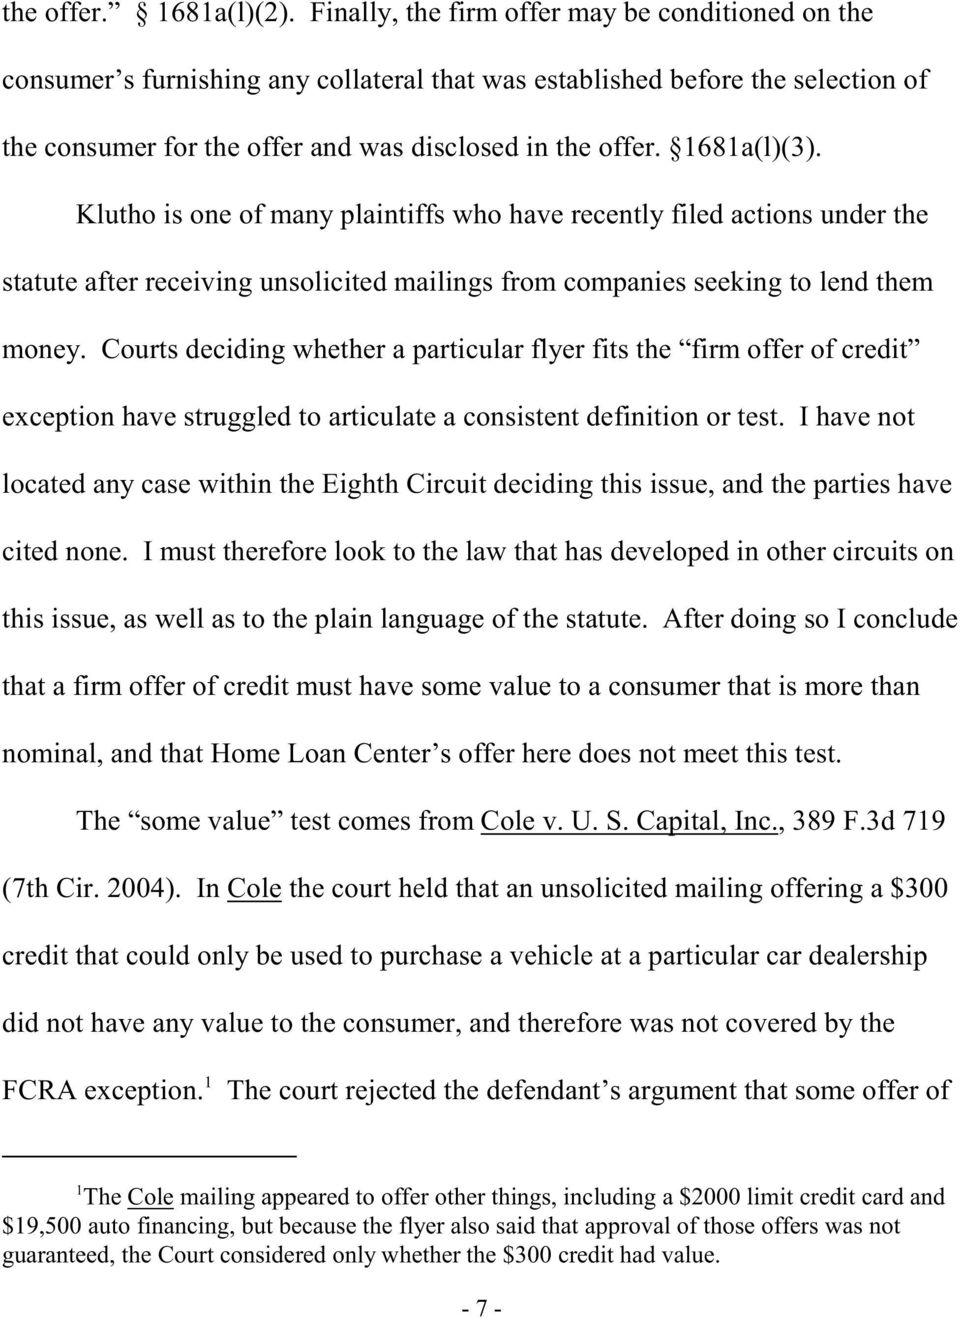 1681a(l)(3). Klutho is one of many plaintiffs who have recently filed actions under the statute after receiving unsolicited mailings from companies seeking to lend them money.